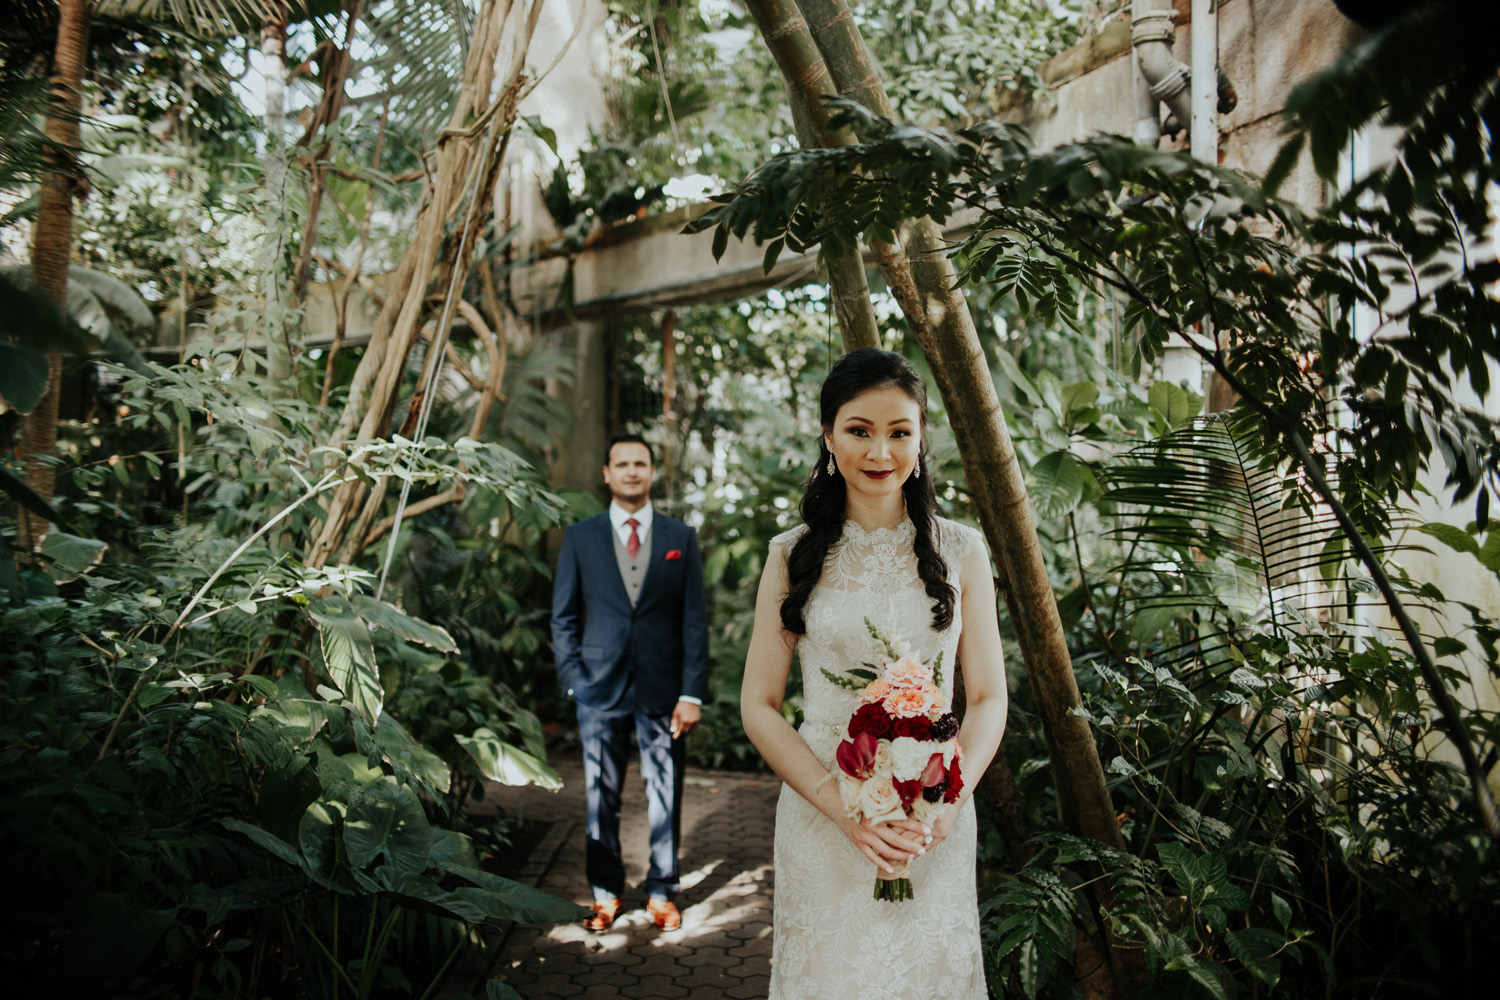 atlanta wedding photographers destination elopement photographer engagement photography atlanta botanical gardens_1022.jpg